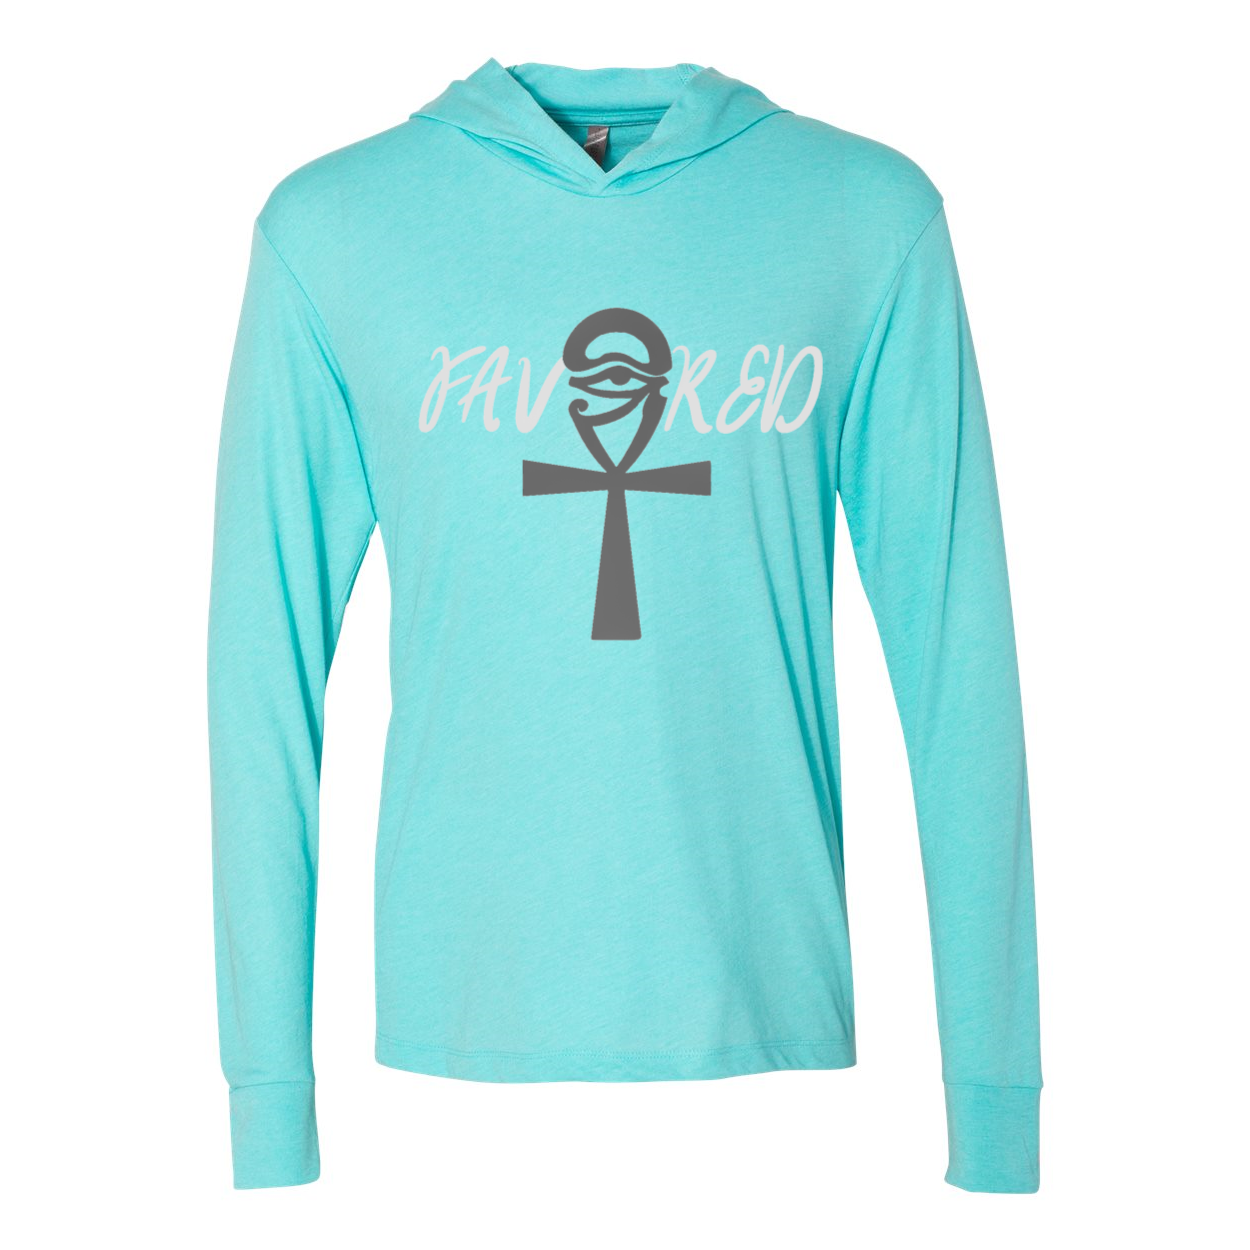 Favored Women's Triblend Hooded Tee - Tie-Fly